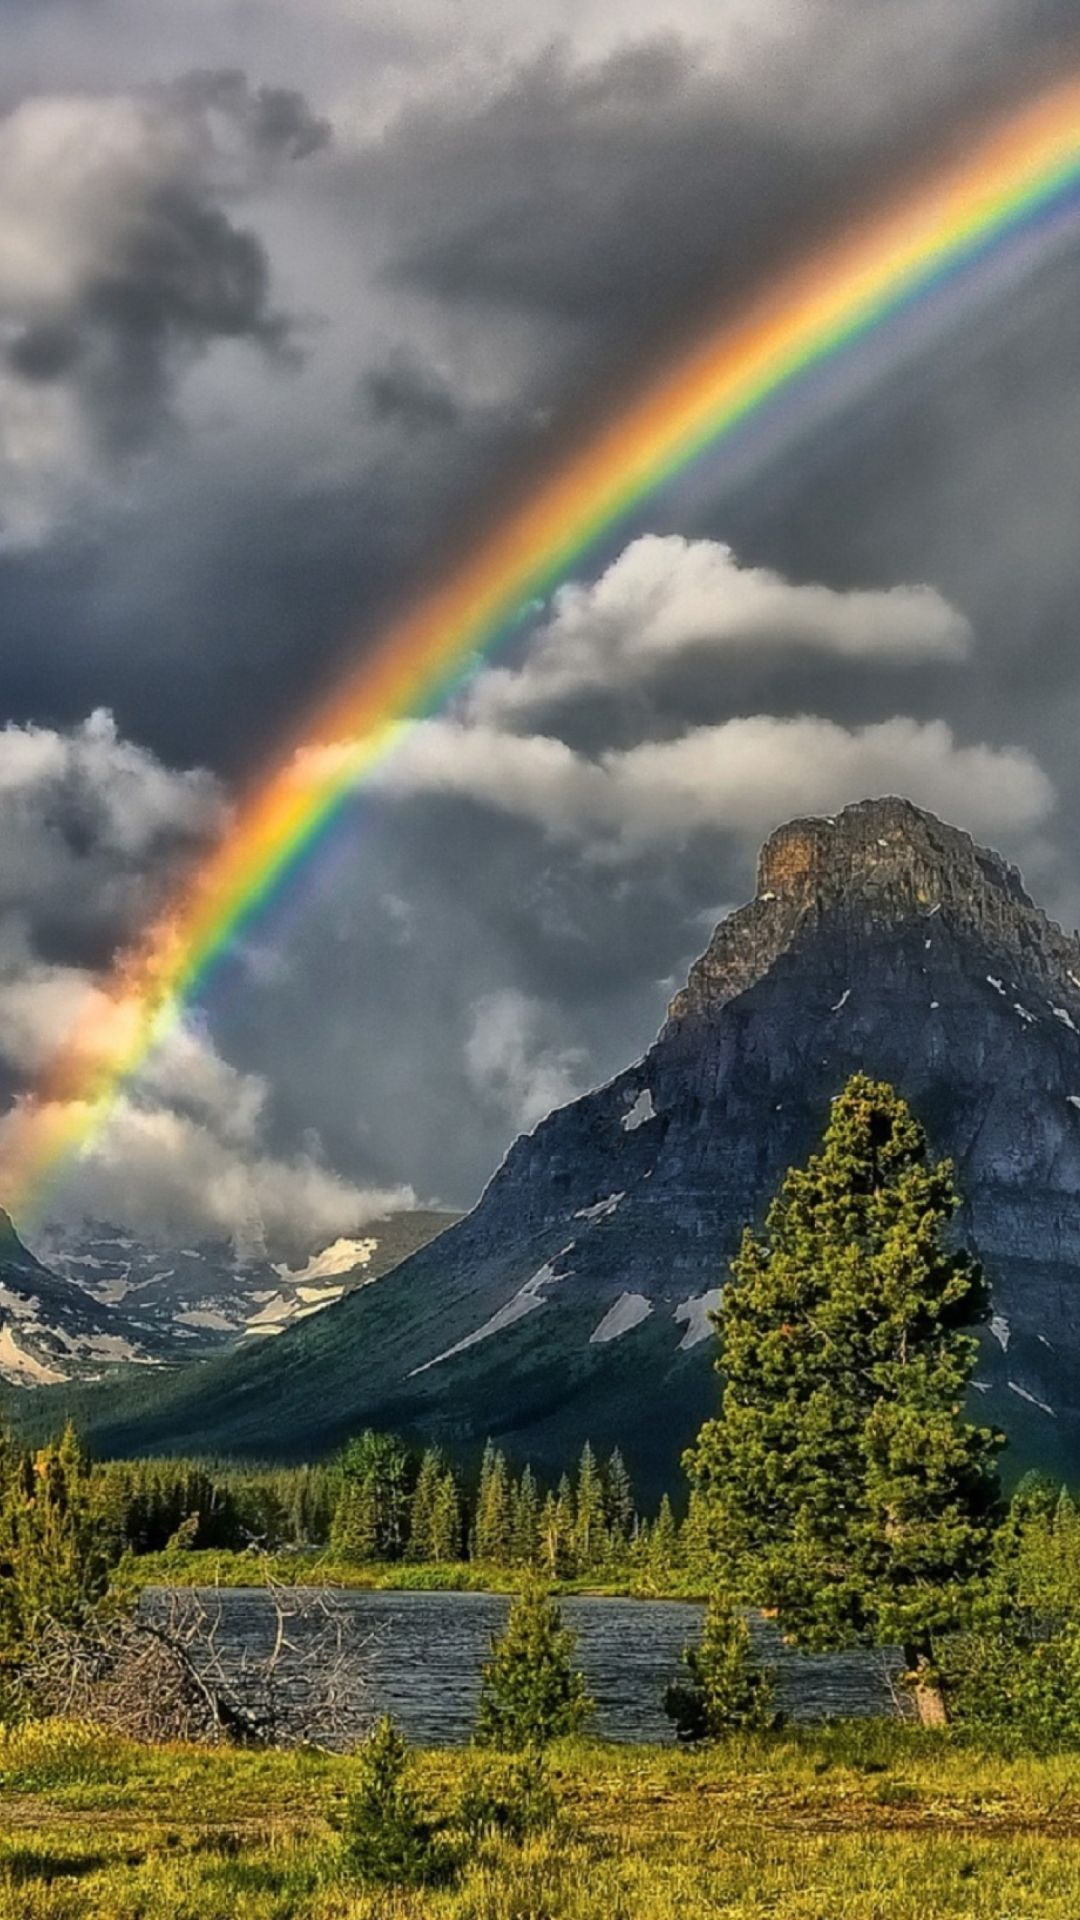 Pictures Of Rainbows In Nature